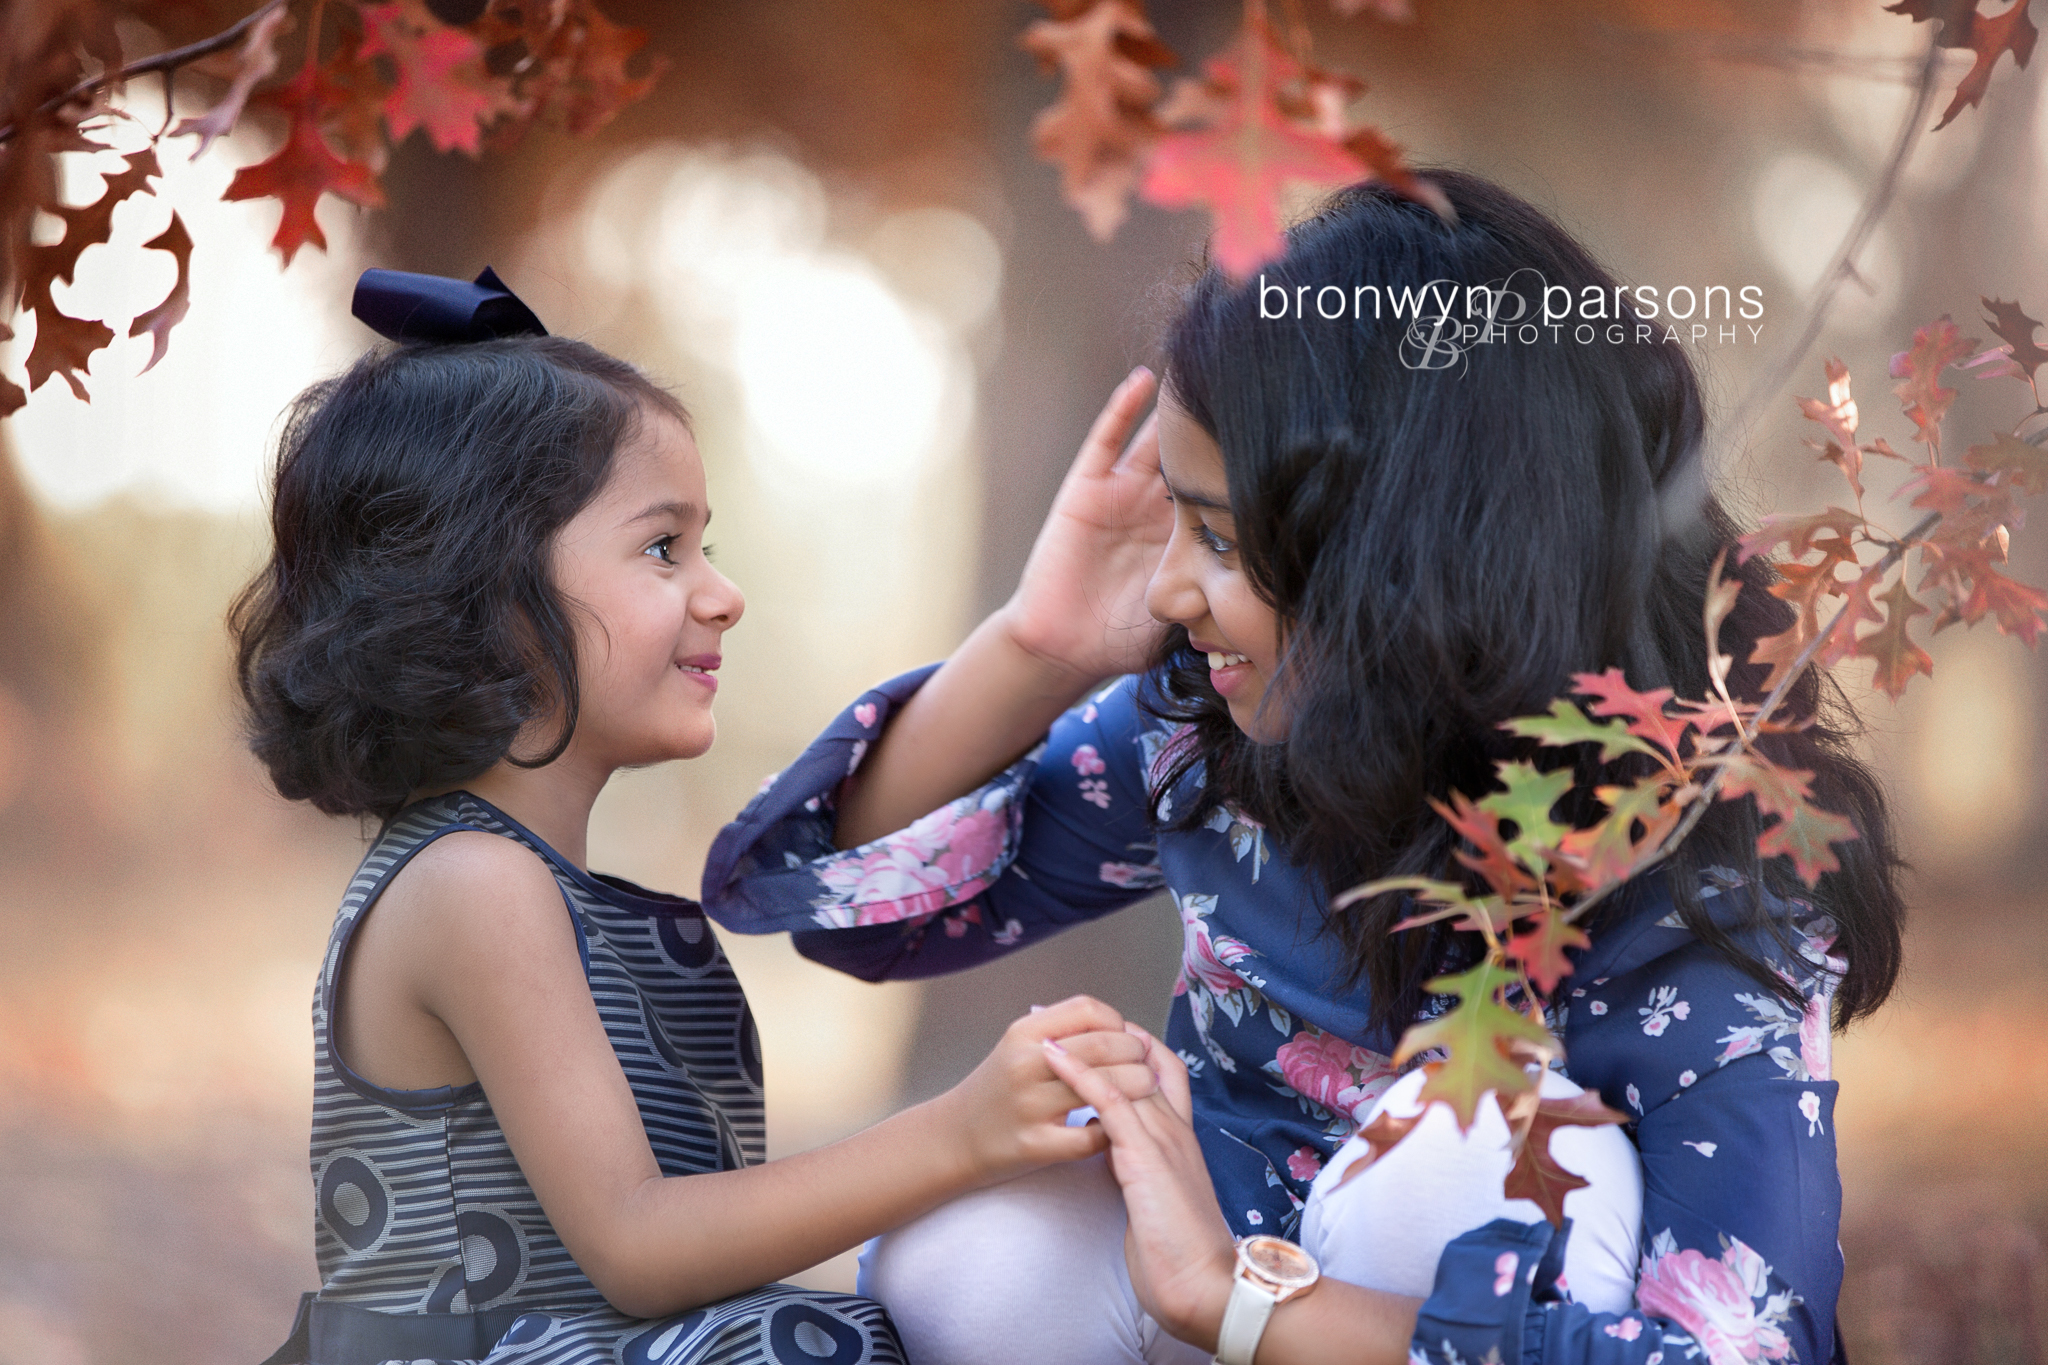 sisters sibling family photography canberra bronwyn parsons photography